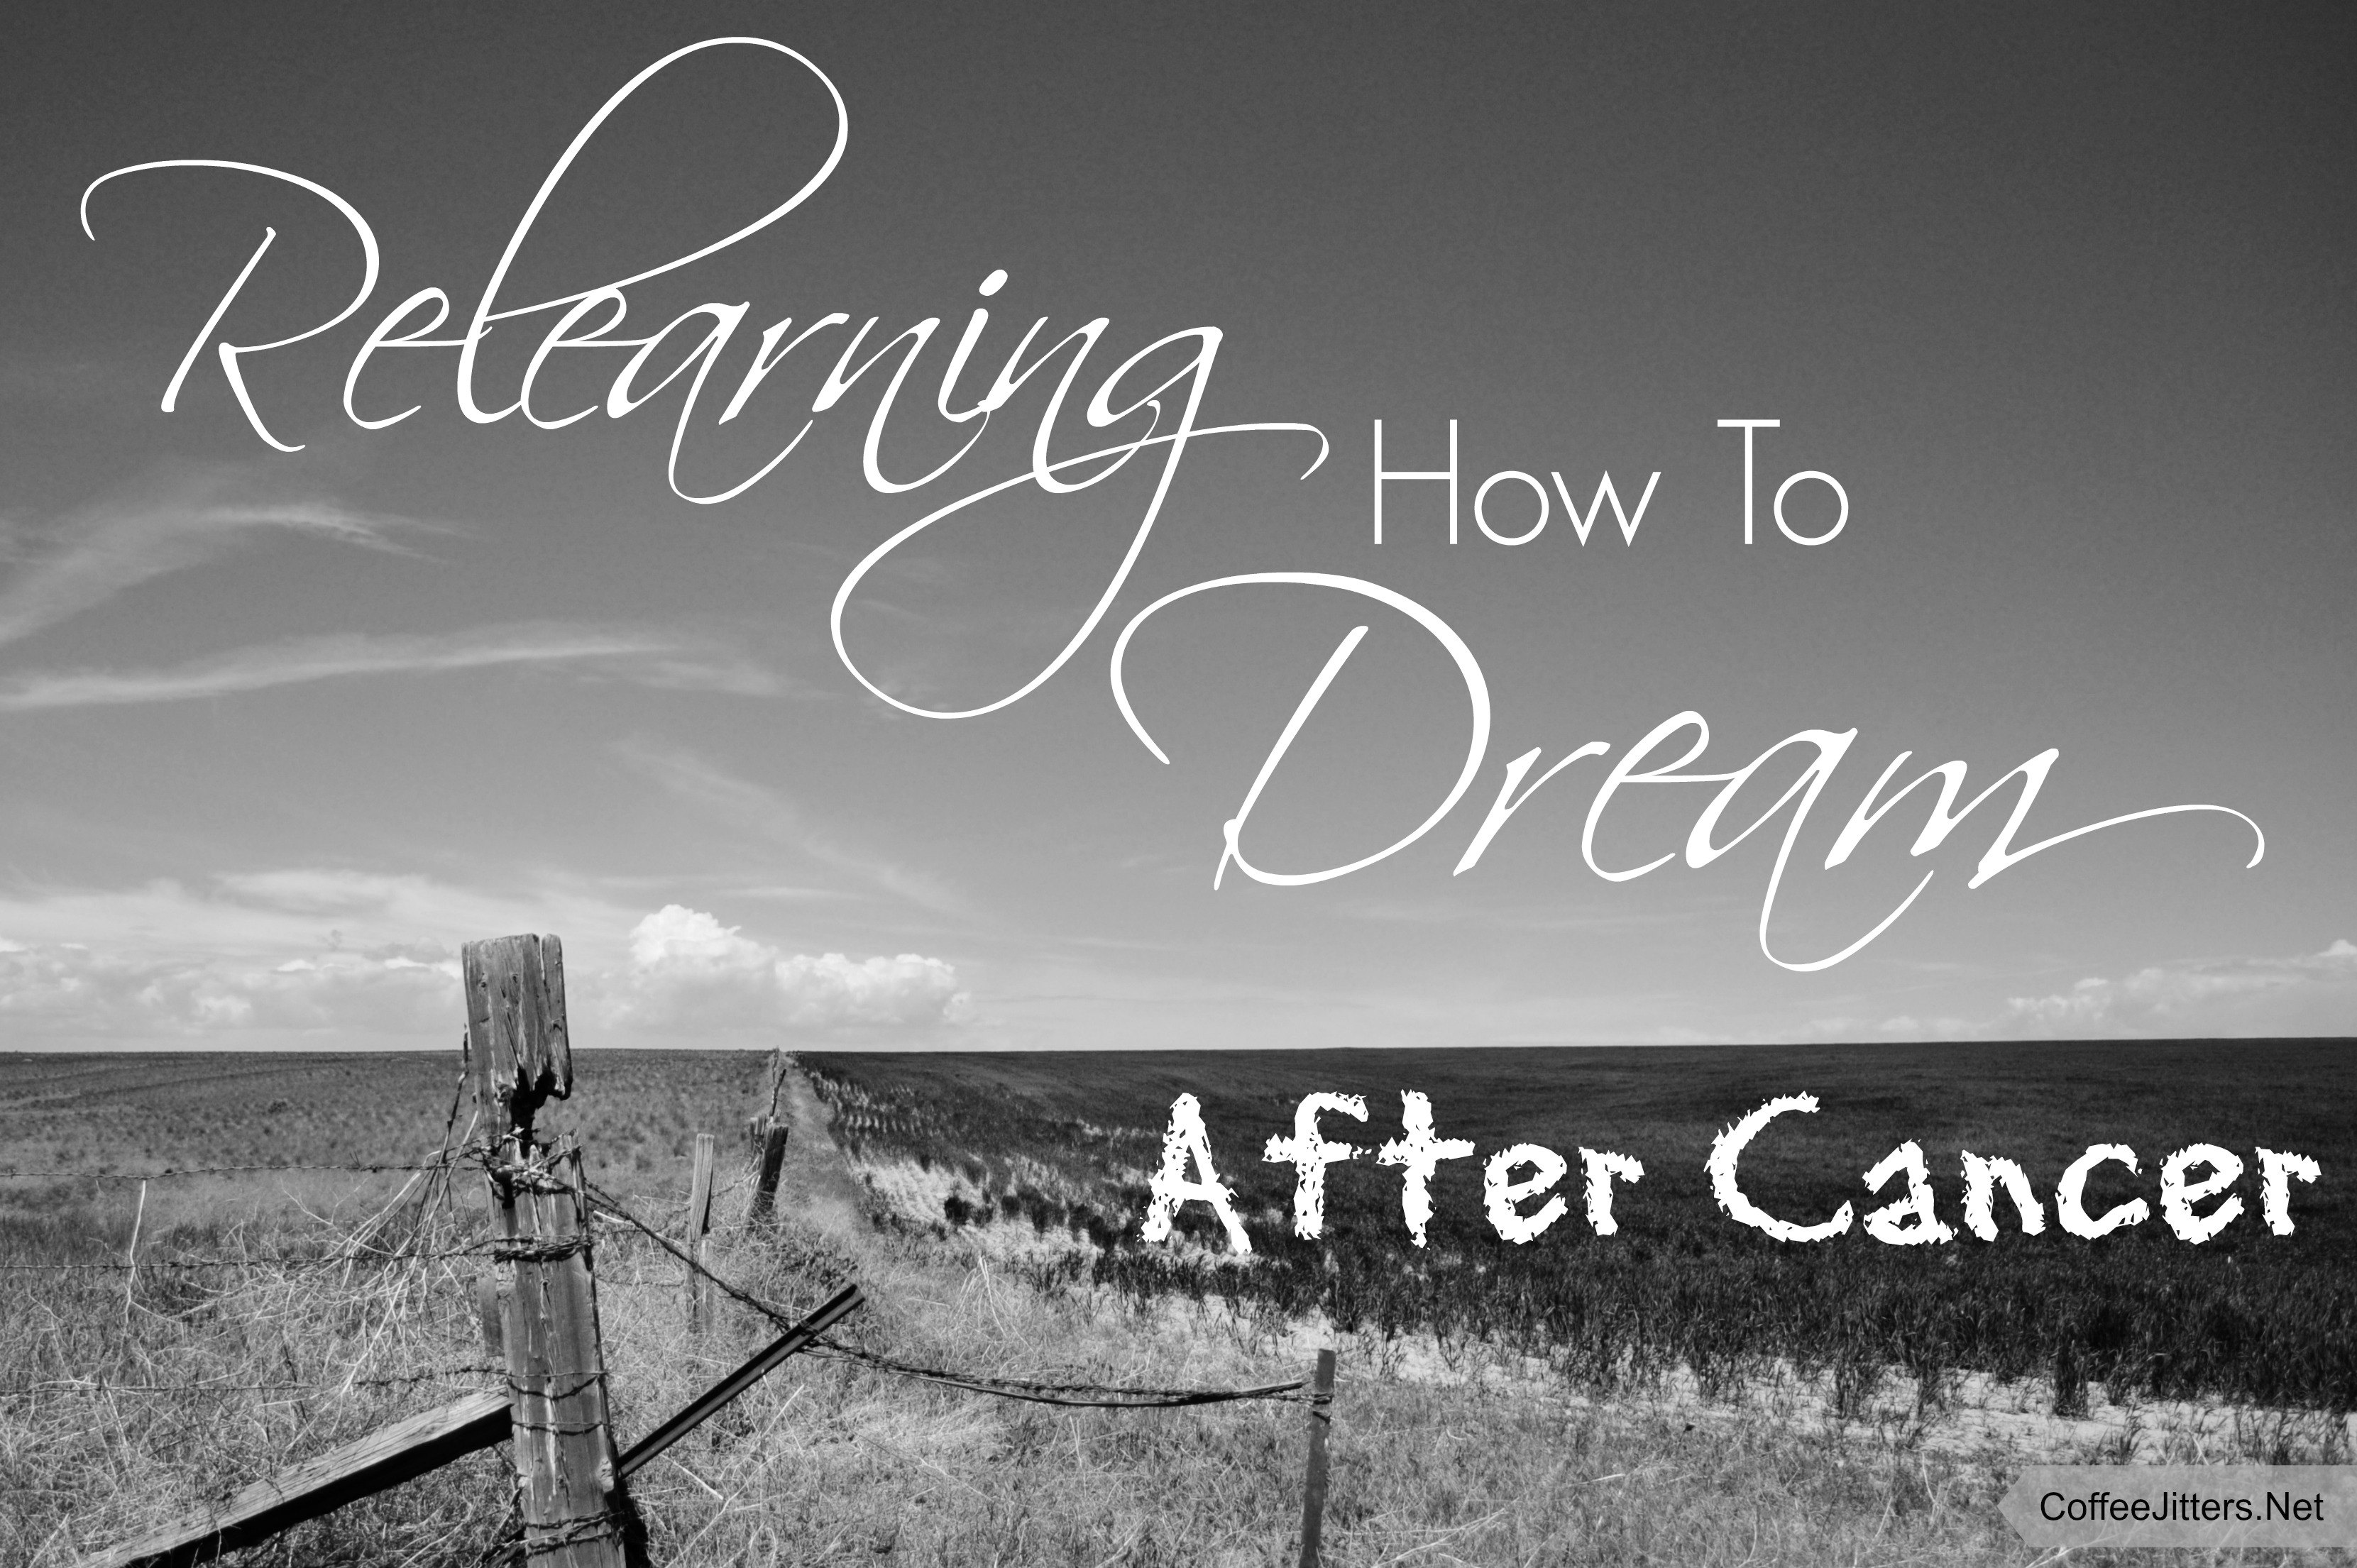 A relearning how to dream after cancer blog